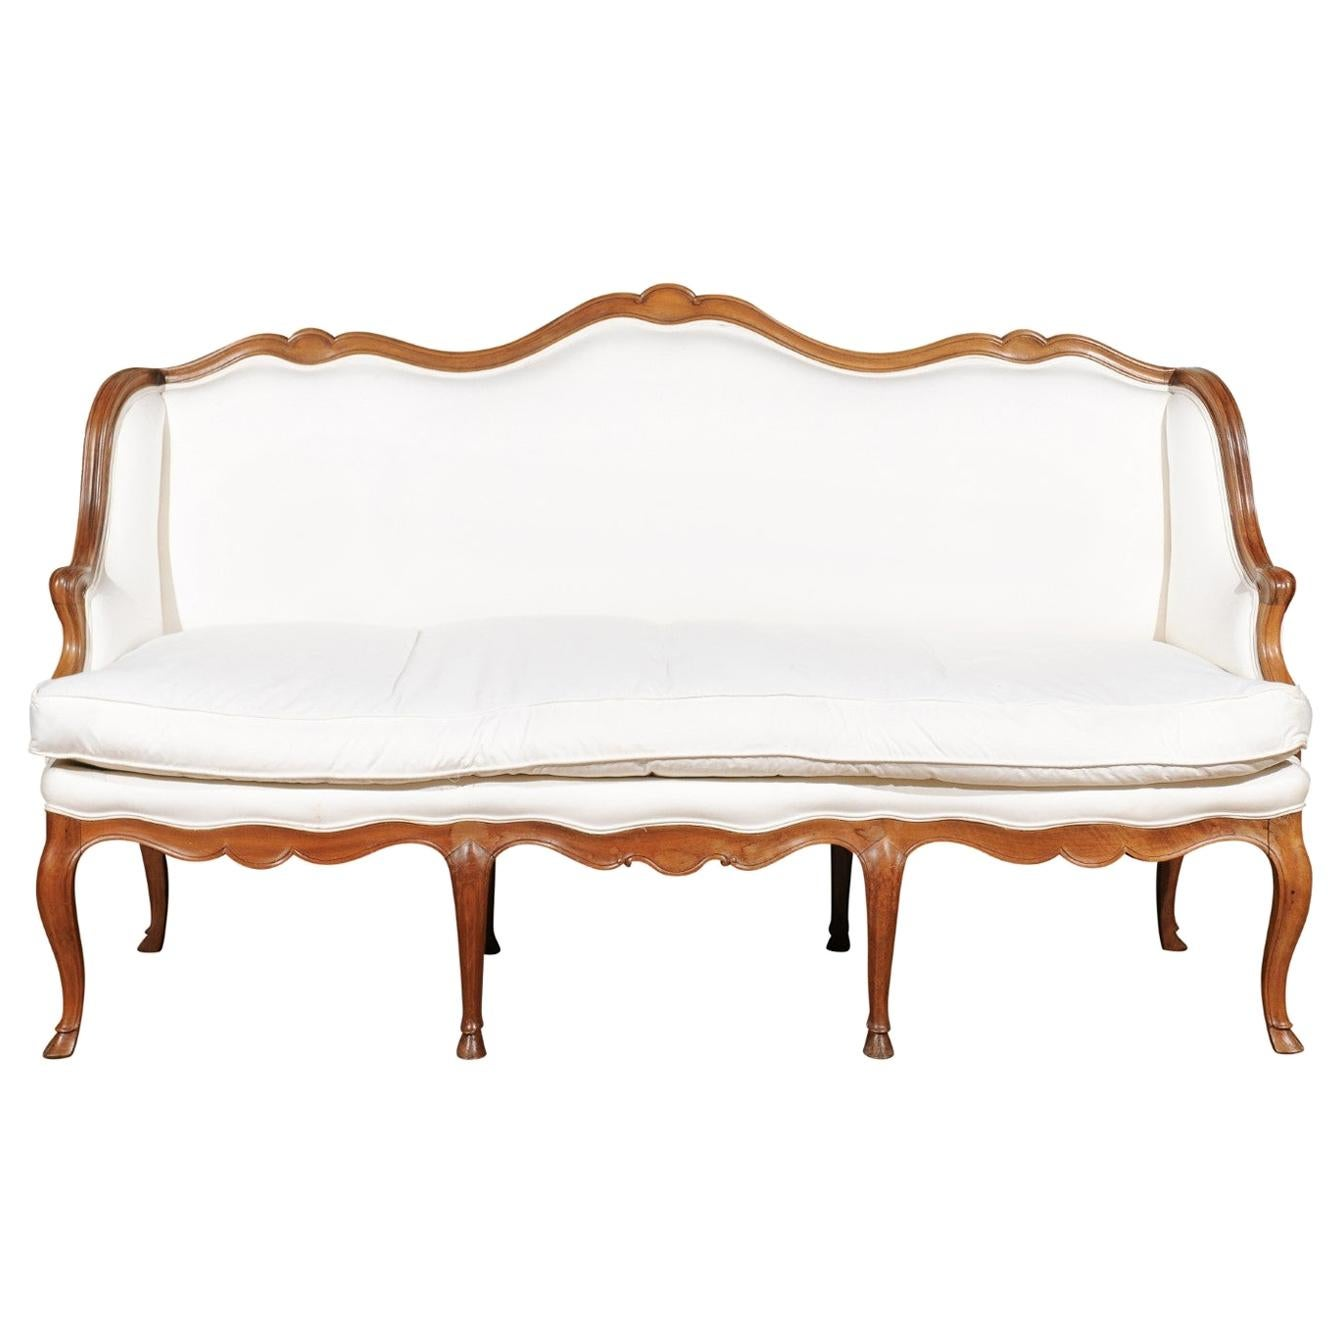 French Louis XV Style 19th Century Walnut Wingback Canapé with Cabriole Legs